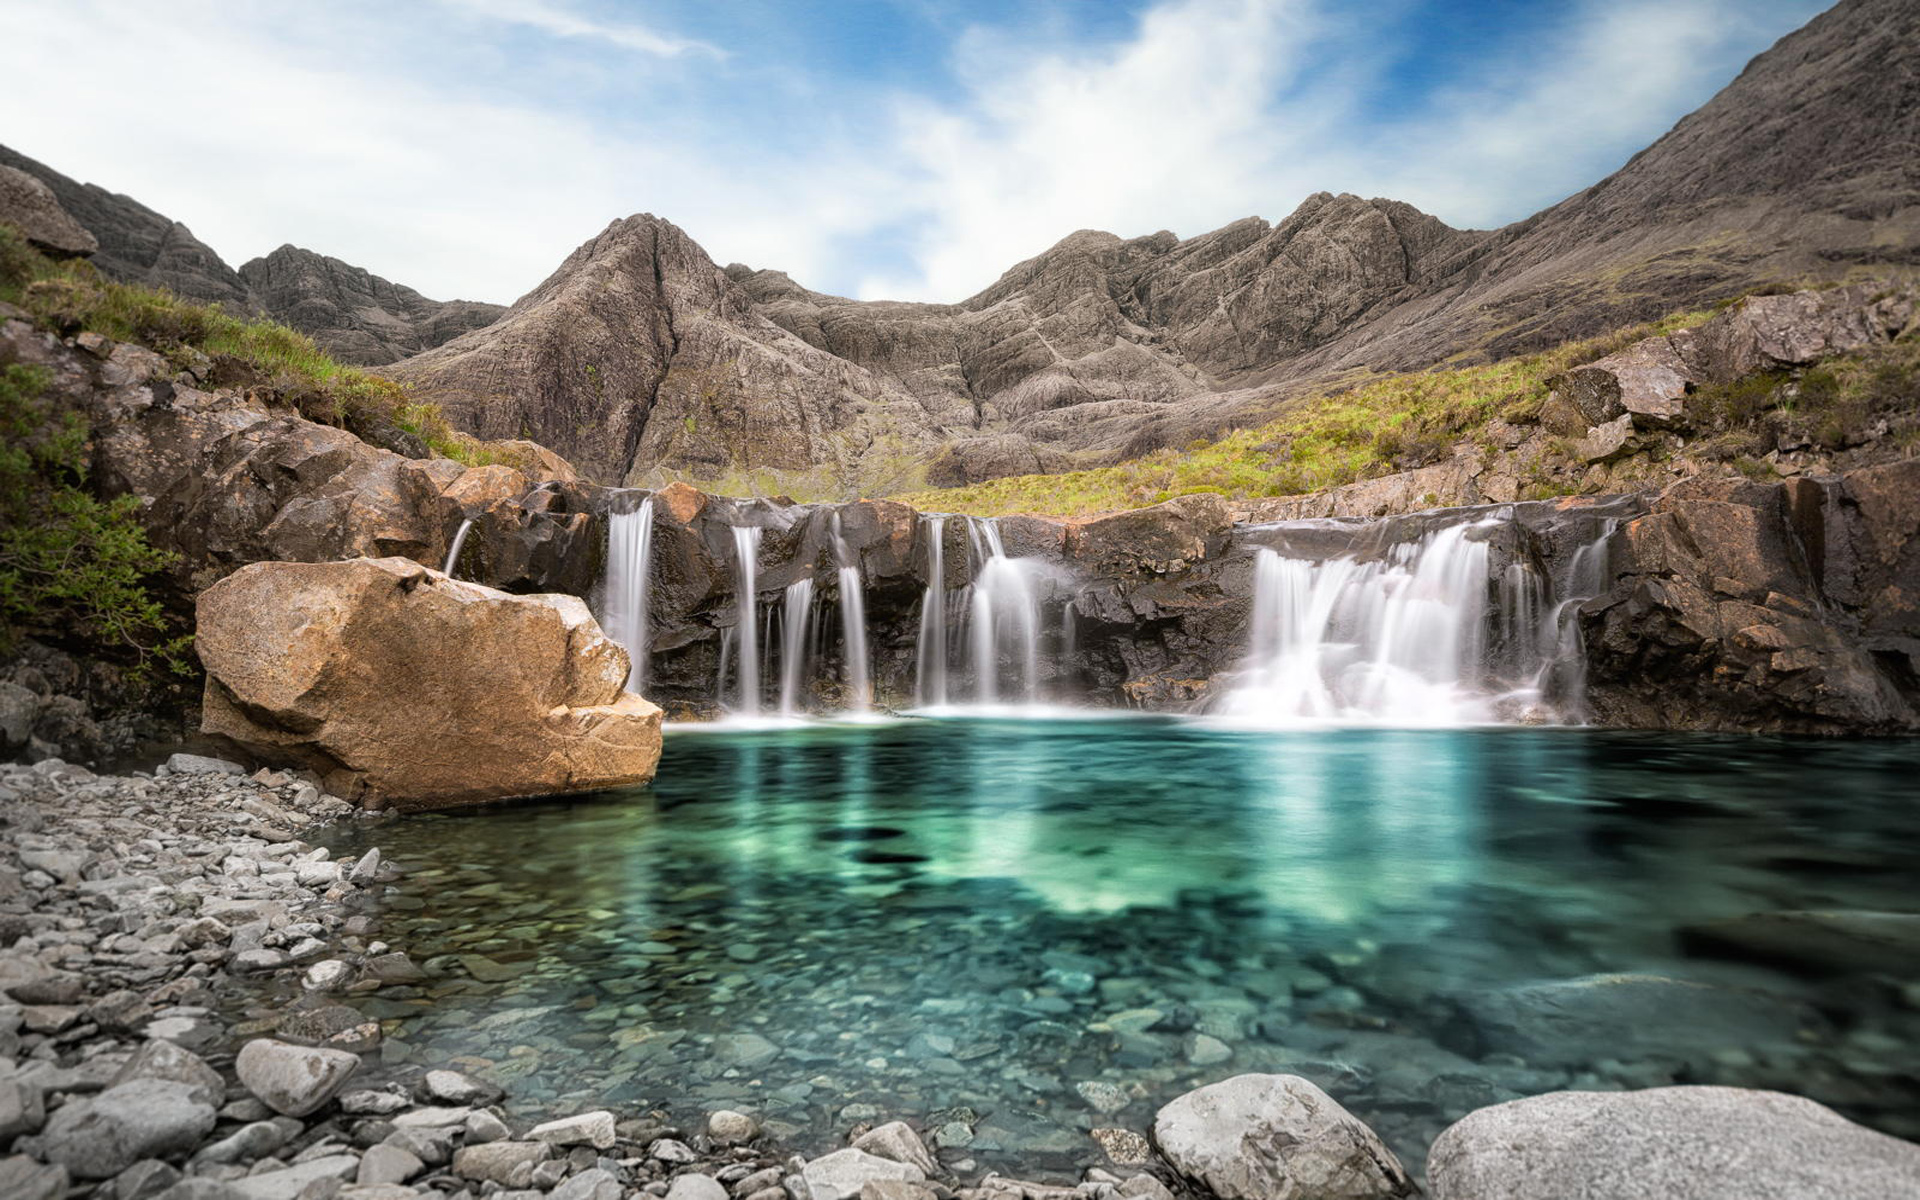 Fairy pools isle of skye in scotland - places to visit in the World